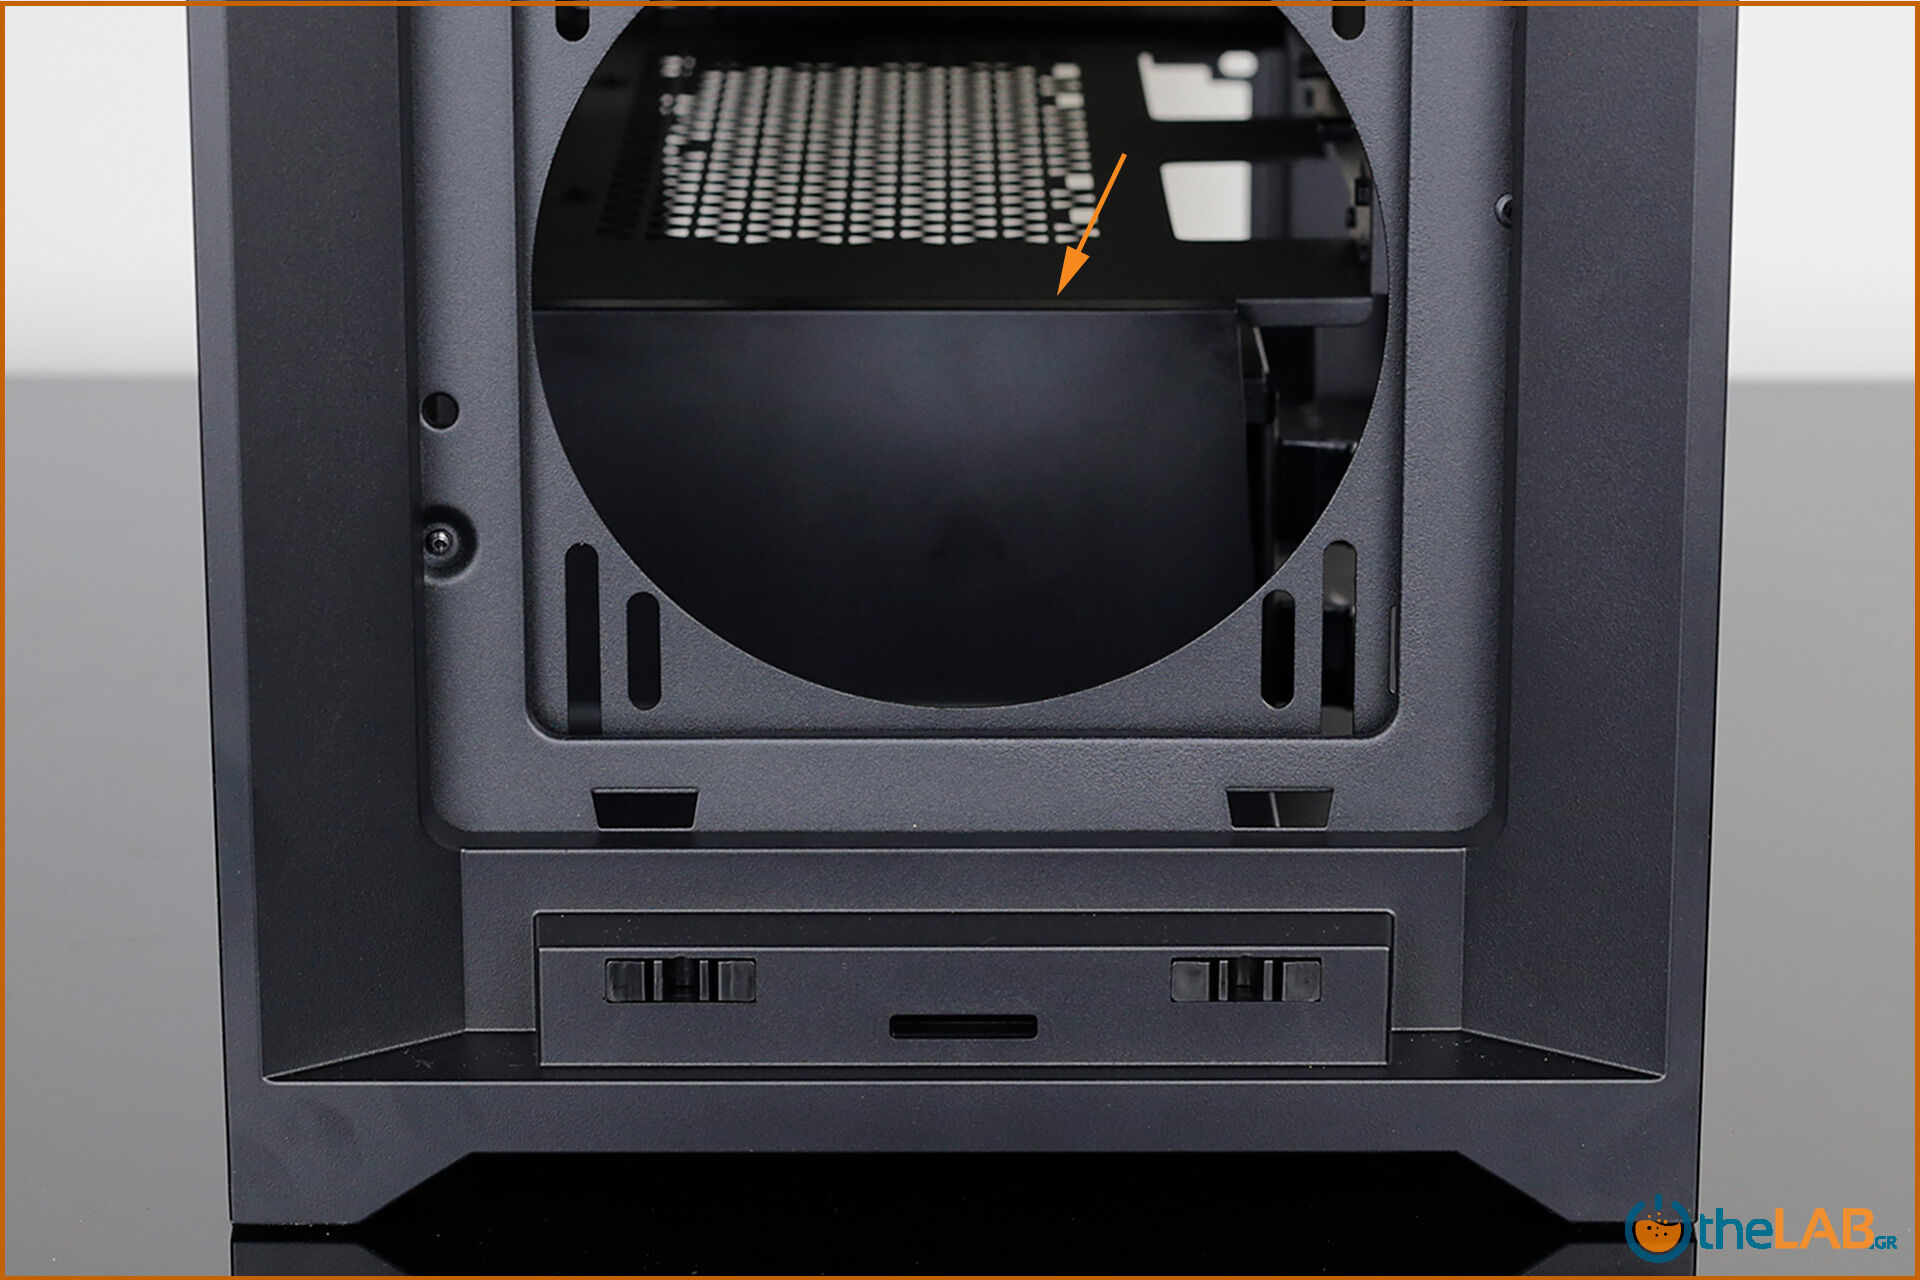 Corsair_icue_5000D__case_smart_exterior_interior_mid_tower_gaming_case_smart_review_image702.jpg